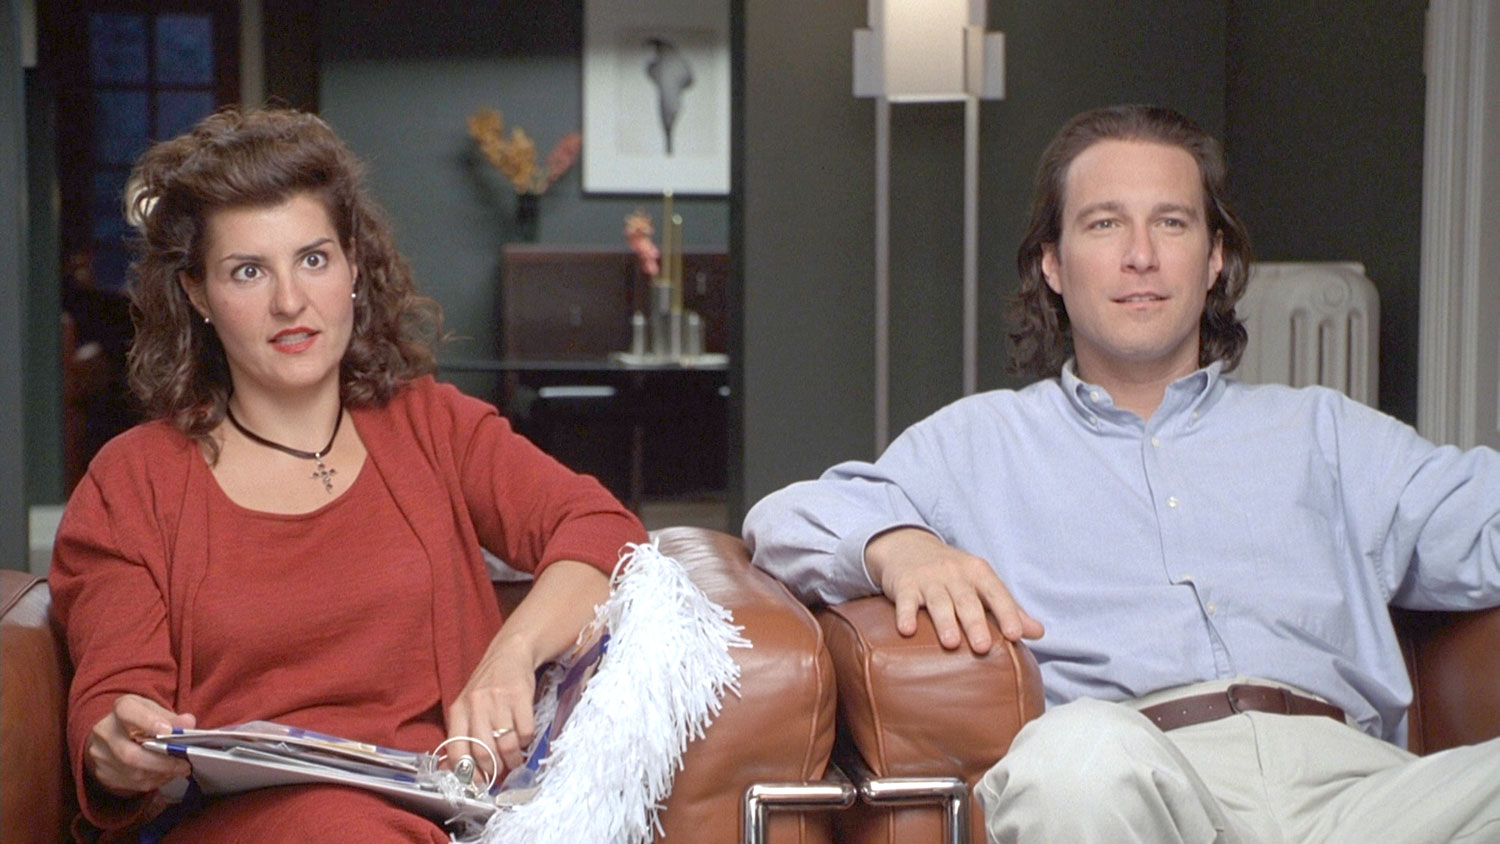 A young Greek woman (Nia Vardalos) goes against family traditions when she falls in love with a non-Greek man (John Corbett). Traditions are important, but sometimes you just have to follow your heart. If you're curious to know how things turned out for Toula and Ian, there's a sequel in the works.